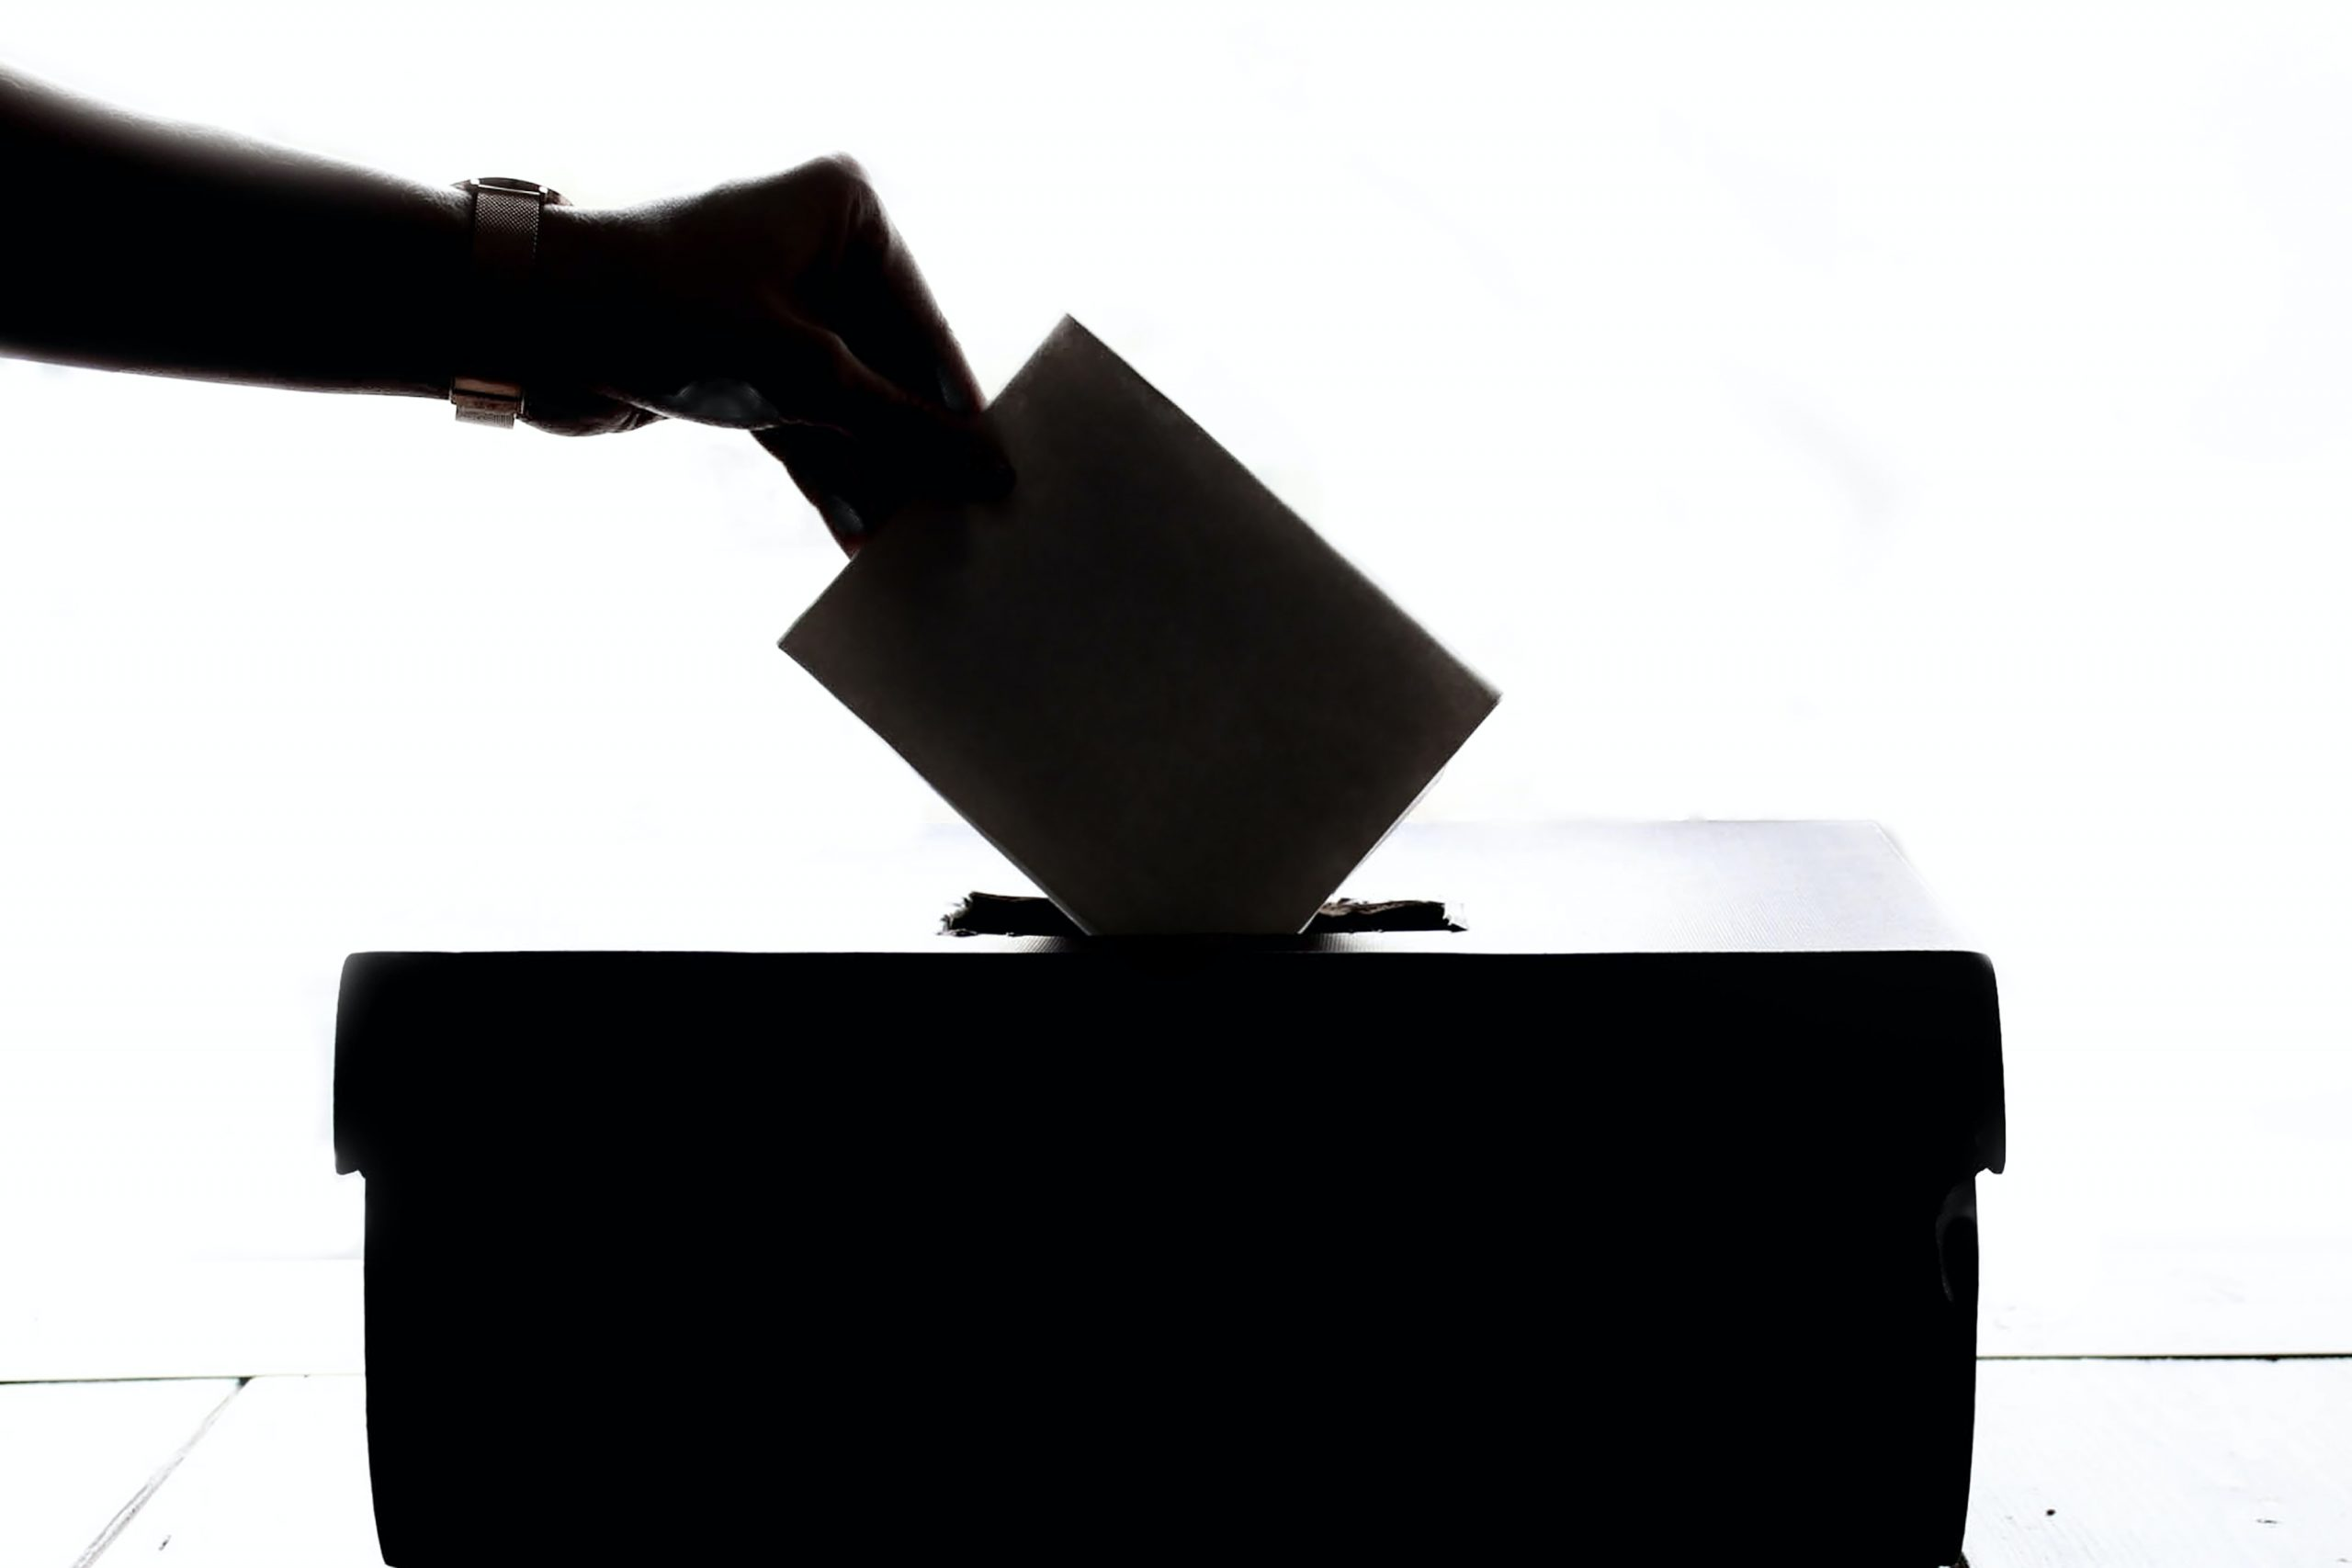 Silhouette of an arm putting an envelope into a box.